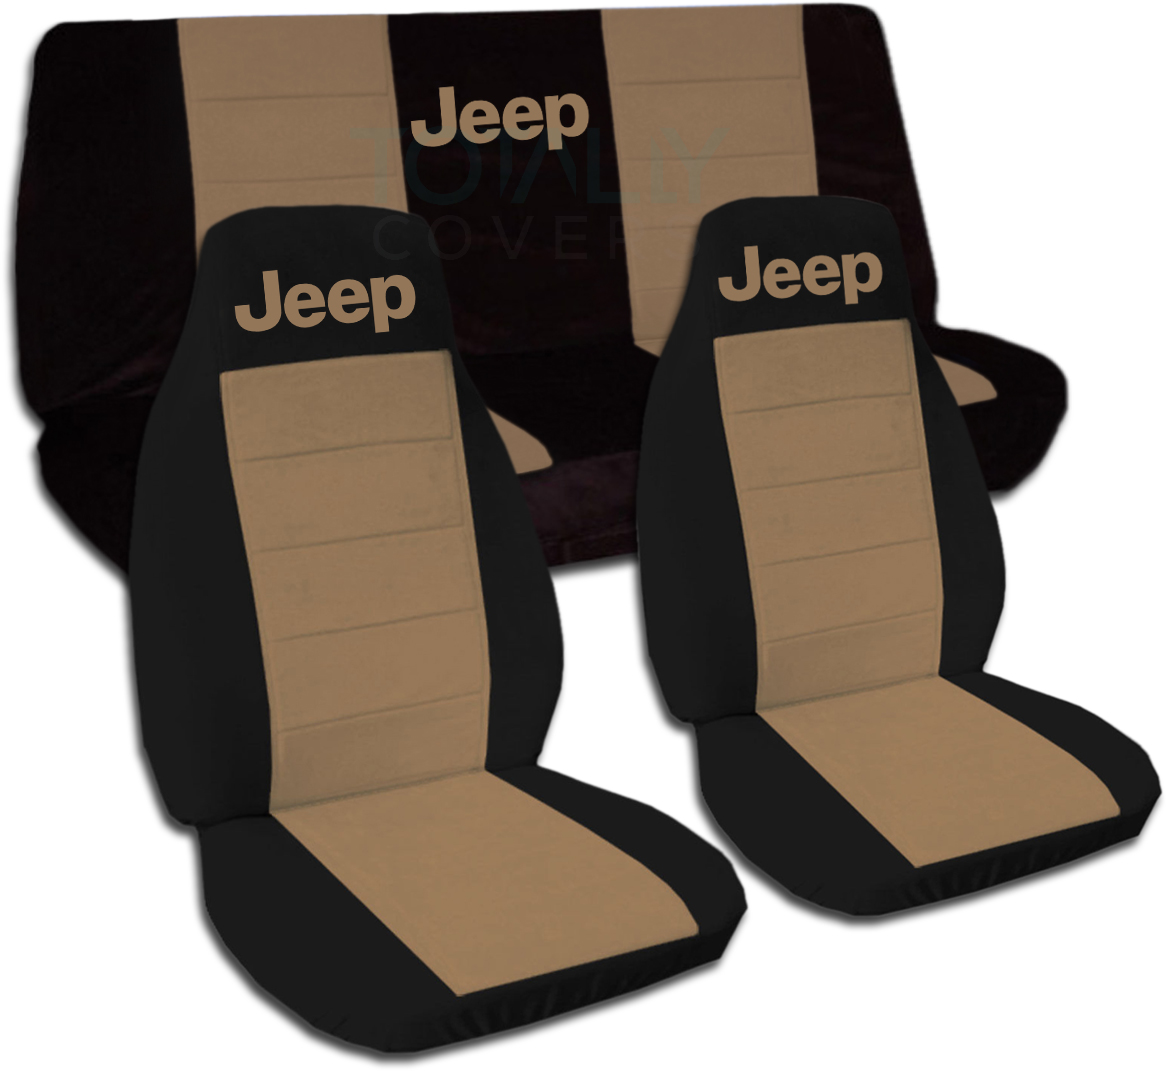 Jeep Wrangler Car Seat Covers Uk